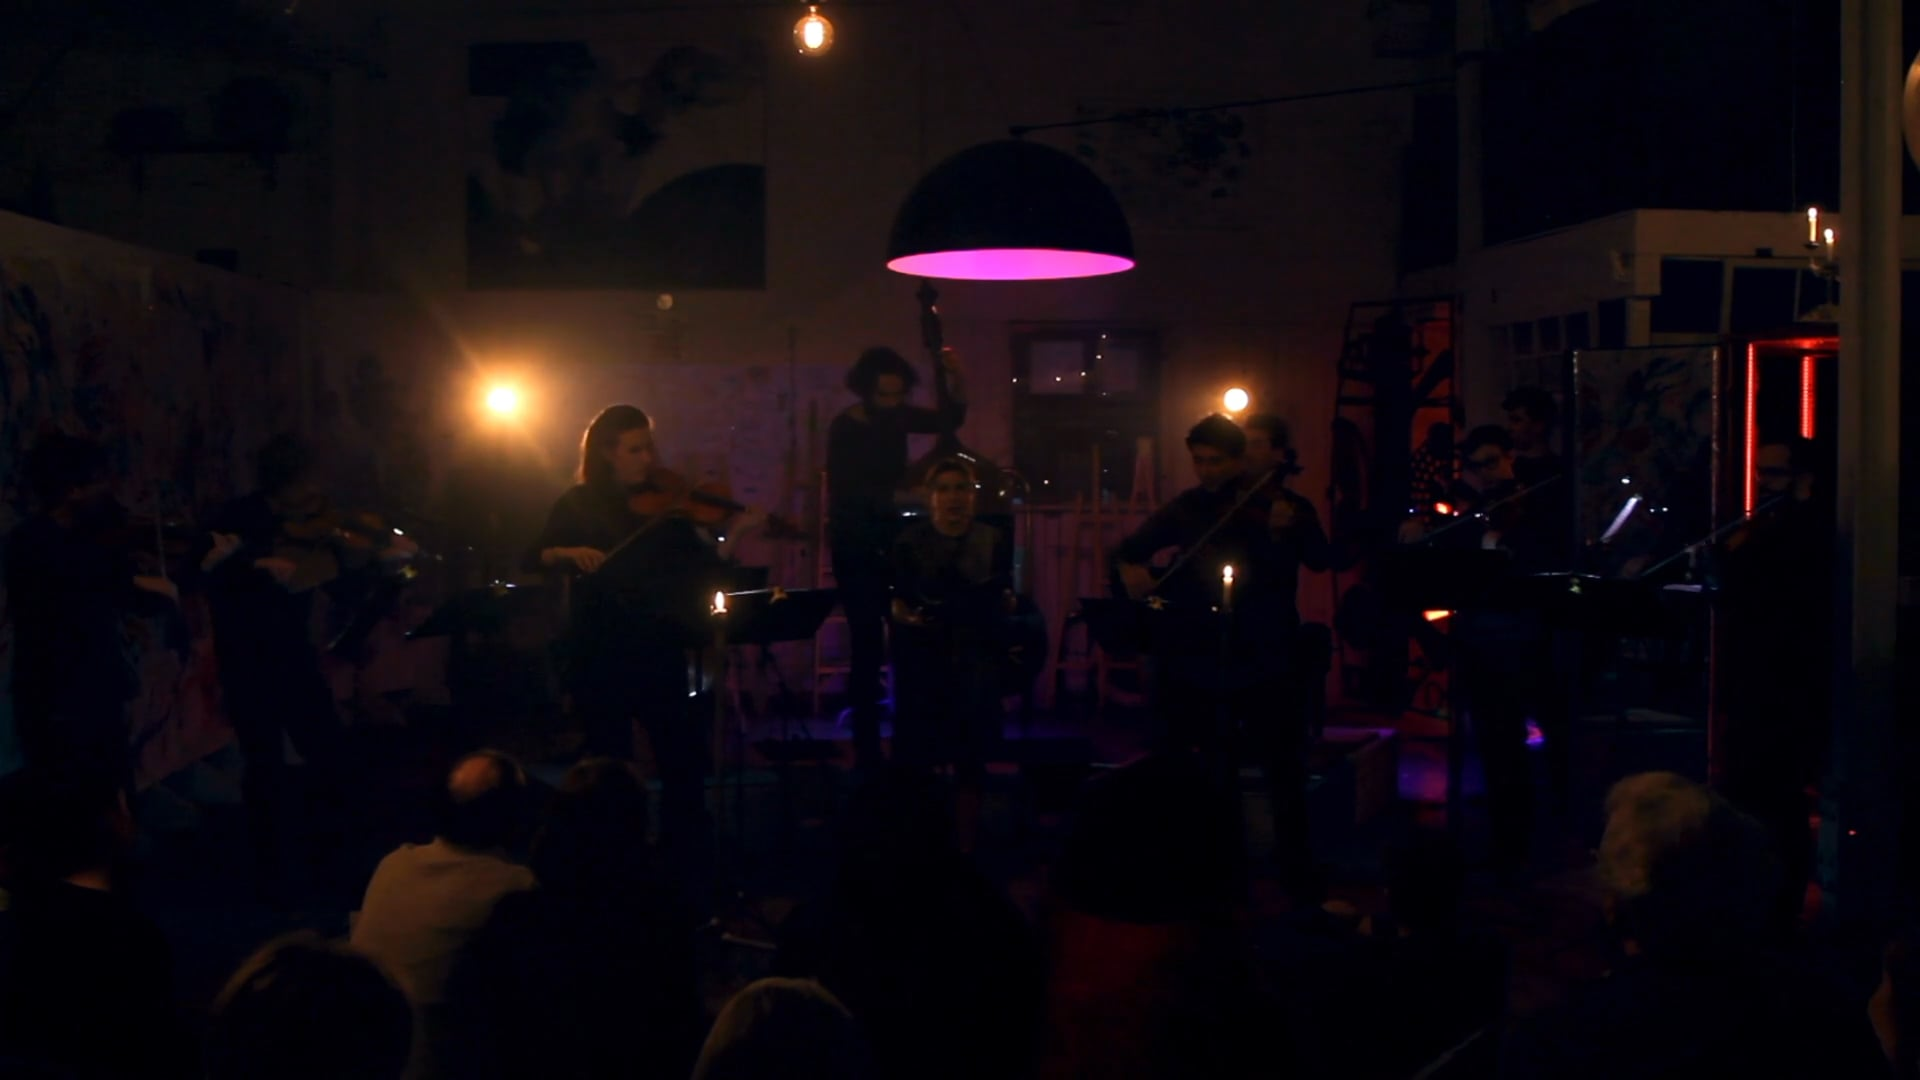 collectif9 - Night of the Flying Horses - 12 - How Slow the Wind (Osvaldo Golijov)